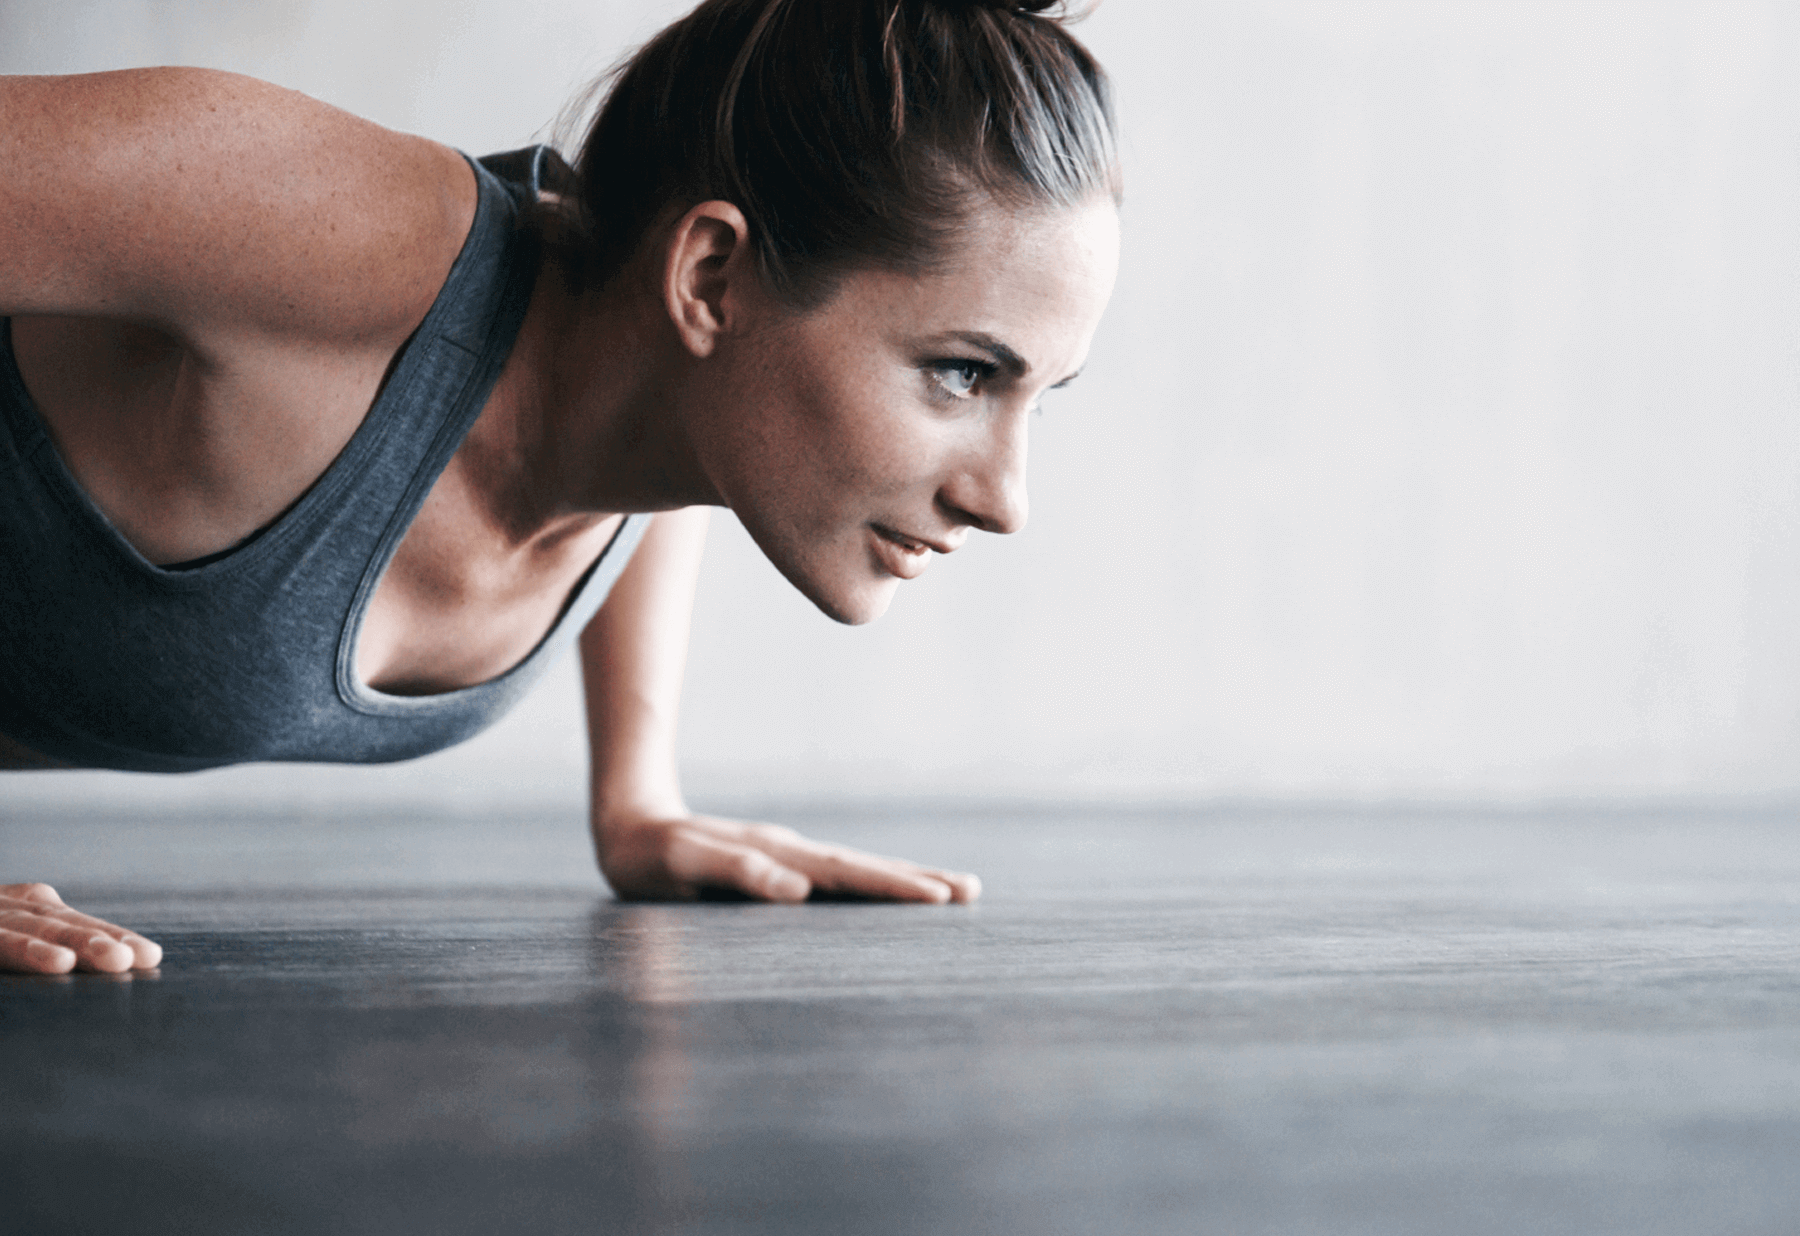 Seven Simple Workouts To Lose Weight Without Going to The Gym